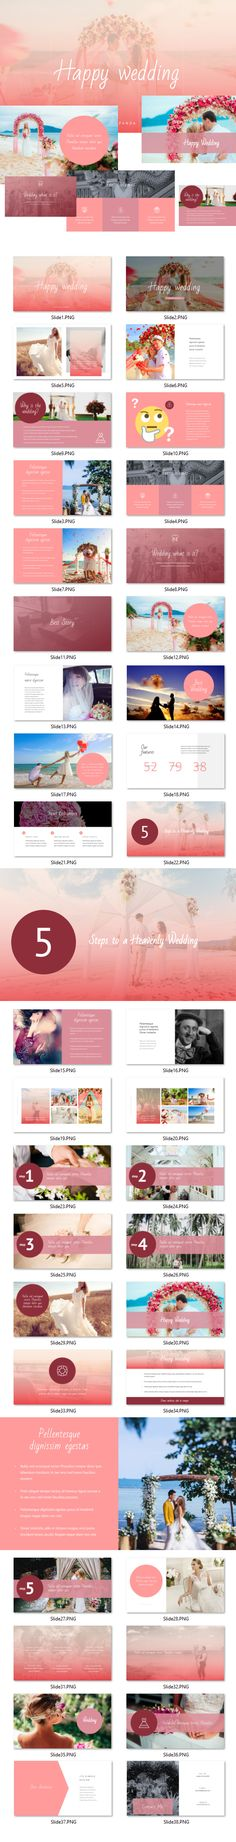 Interior Design Powerpoint Presentation Template Creative - wedding powerpoint template